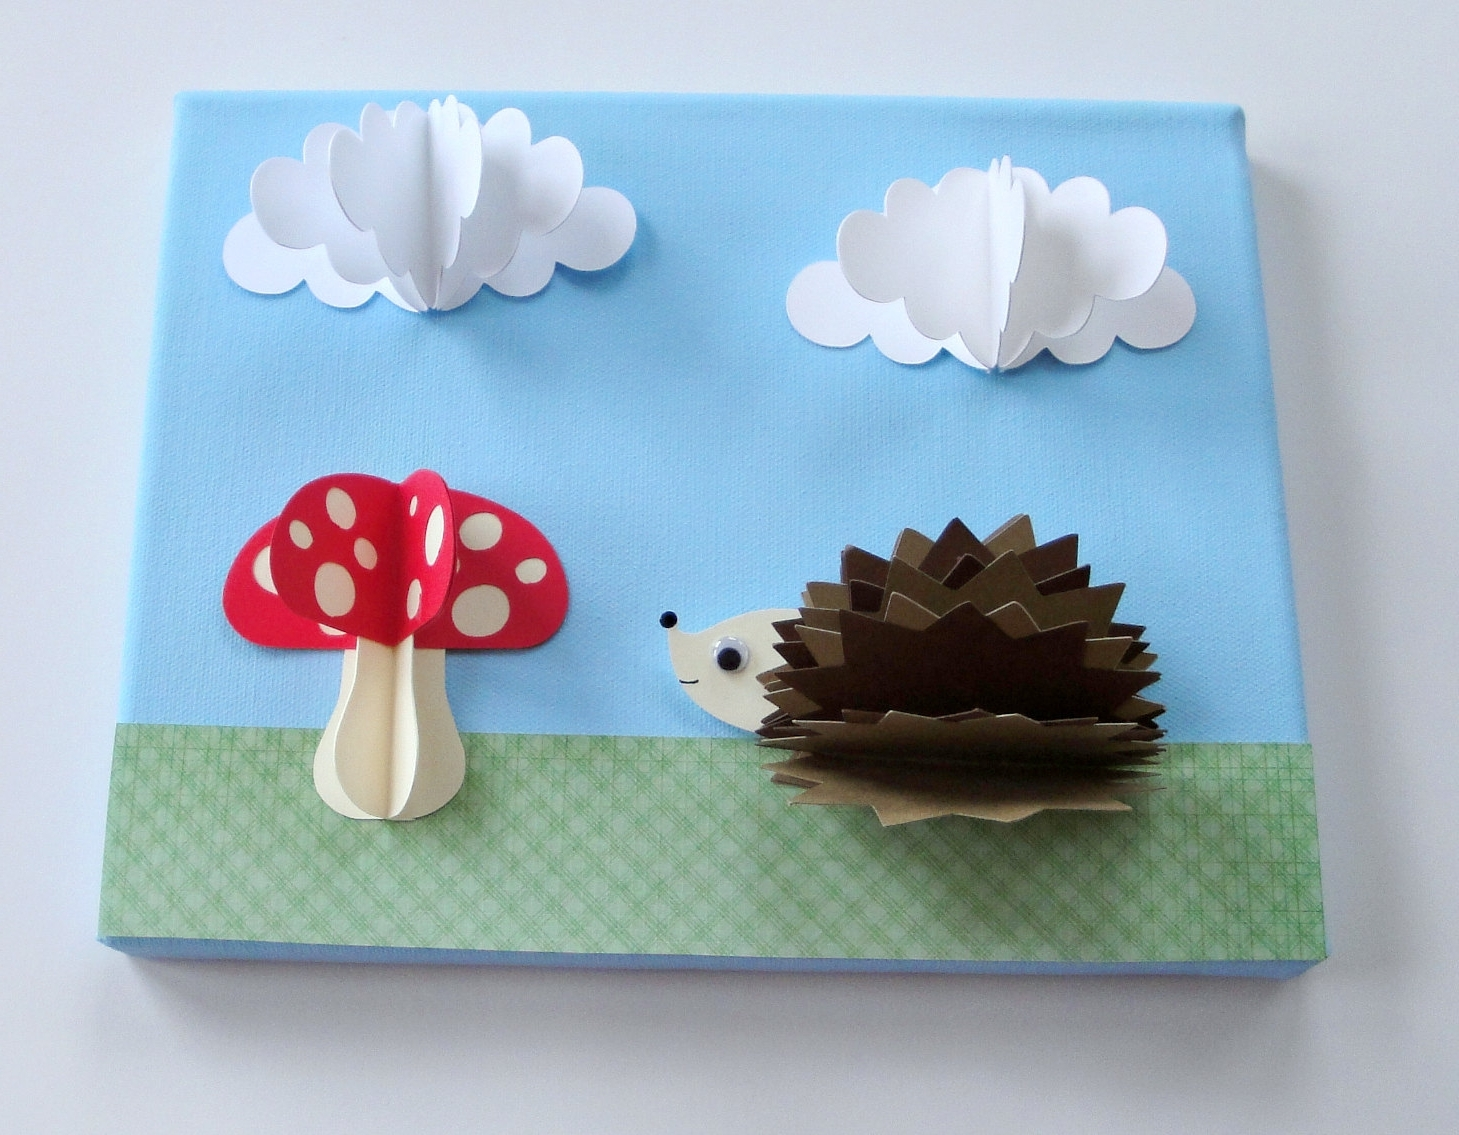 Original Hedgehog And Mushroom 3D Paper Wall Art On 8 X 10 Canvas In Fashionable 3D Clouds Out Of Paper Wall Art (Gallery 4 of 15)